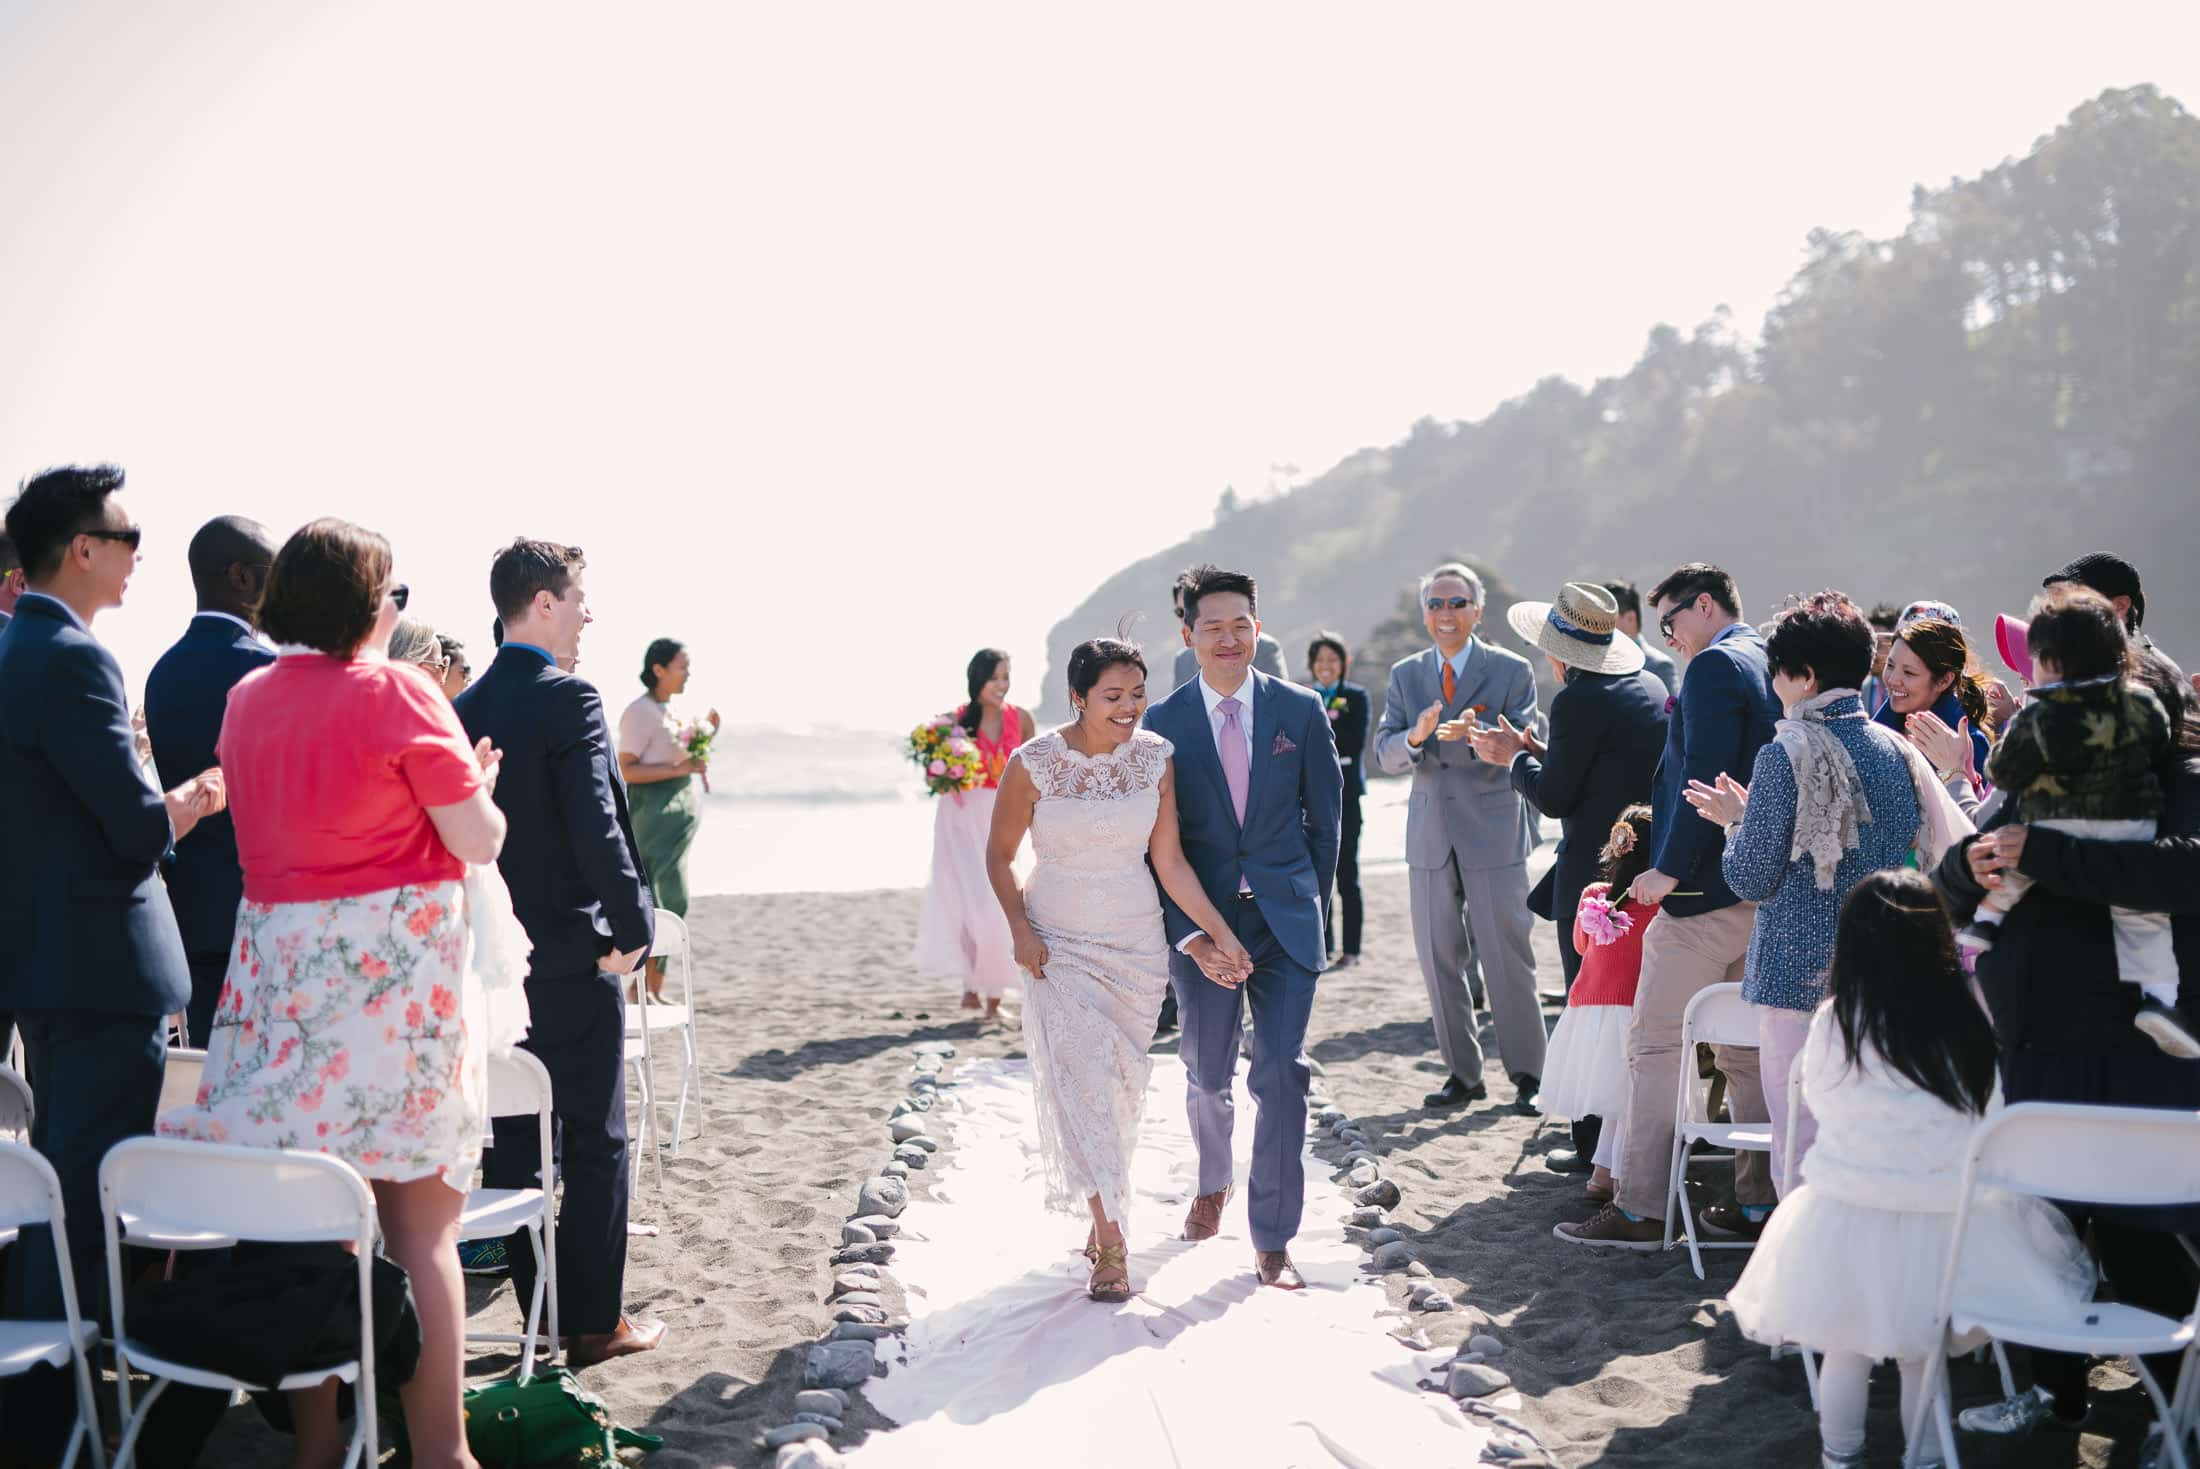 Muir Beach Wedding Ceremony